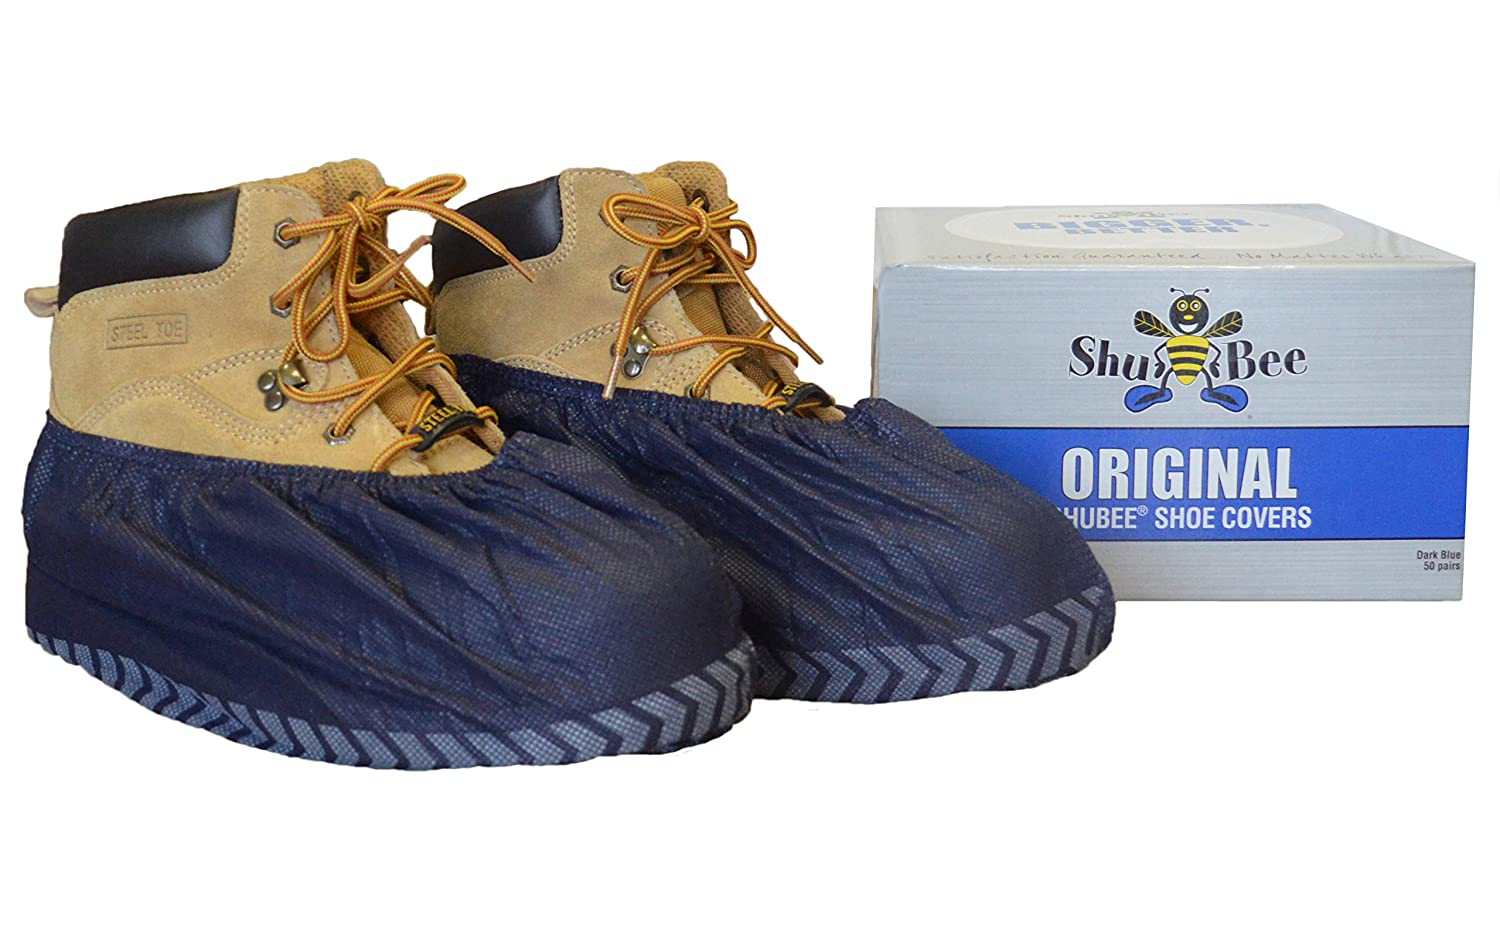 SHUBEE C-SB-SC-DB ORIGINAL PROTECTIVE SHOE COVERS, DARK BLUE (SOLD PER PAIR) *PACKAGED 50 PAIR PER BOX MC51967